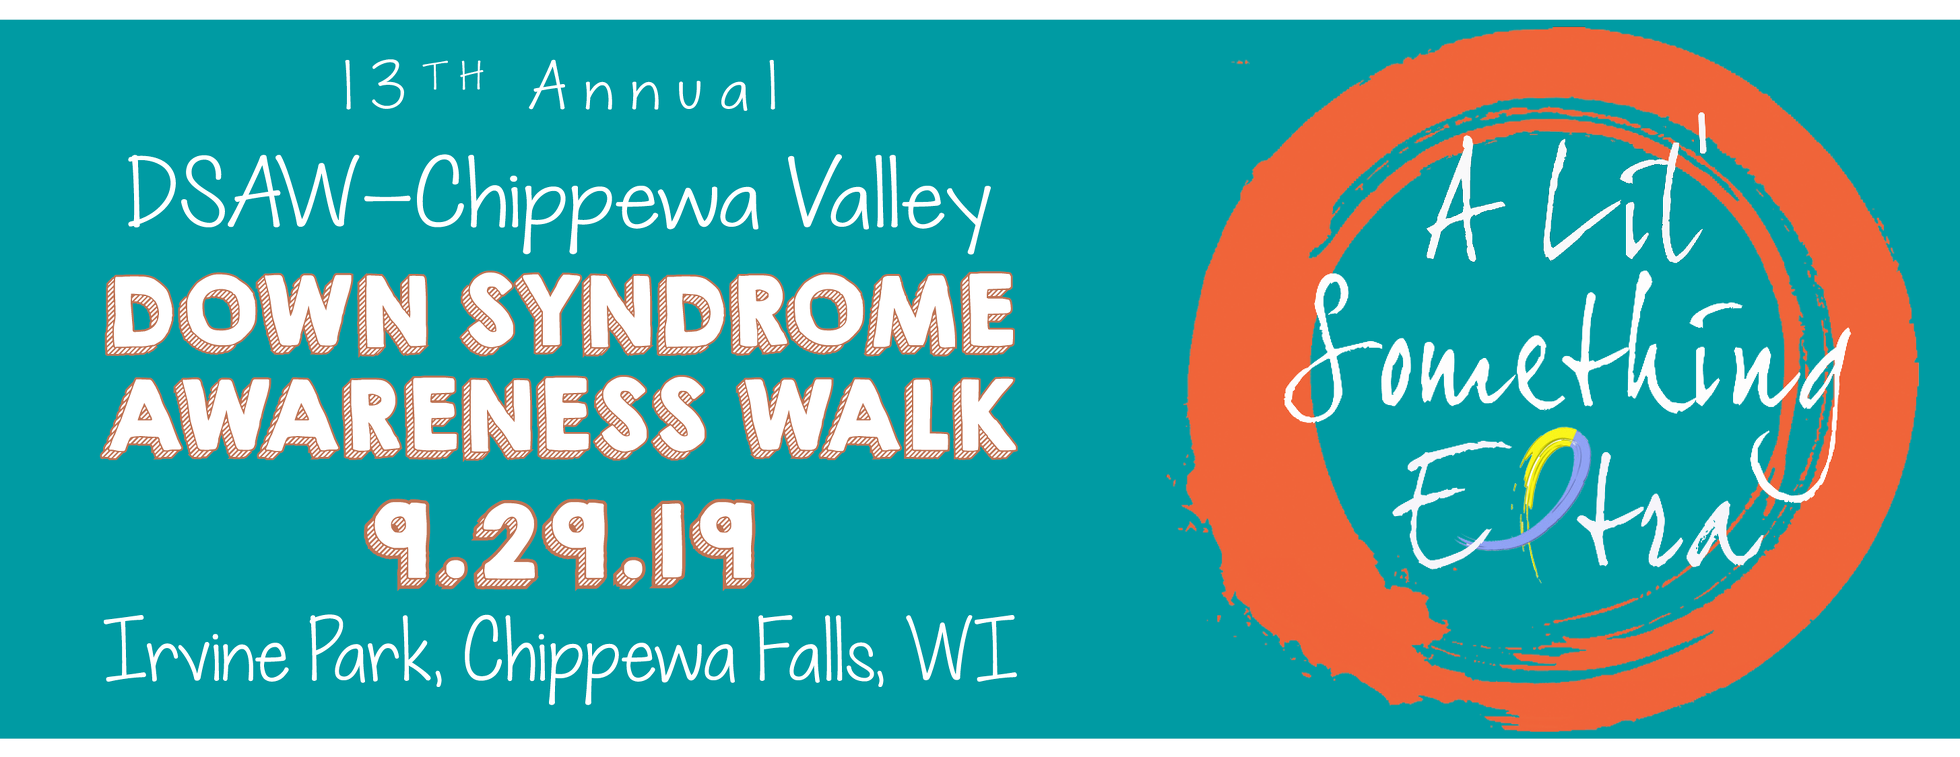 13th Annual Chippewa Valley Down Syndrome Awareness Walk